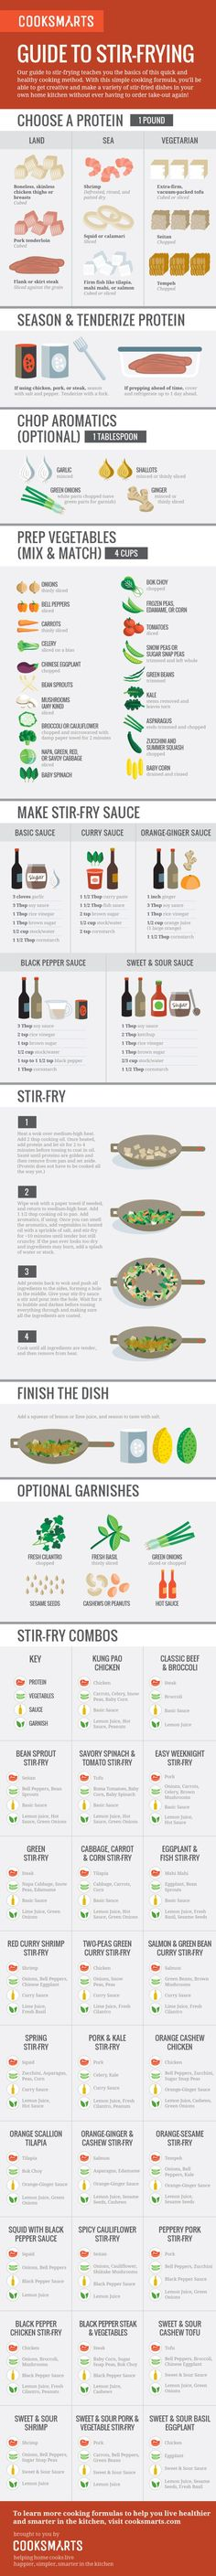 Make Foolproof Stir-